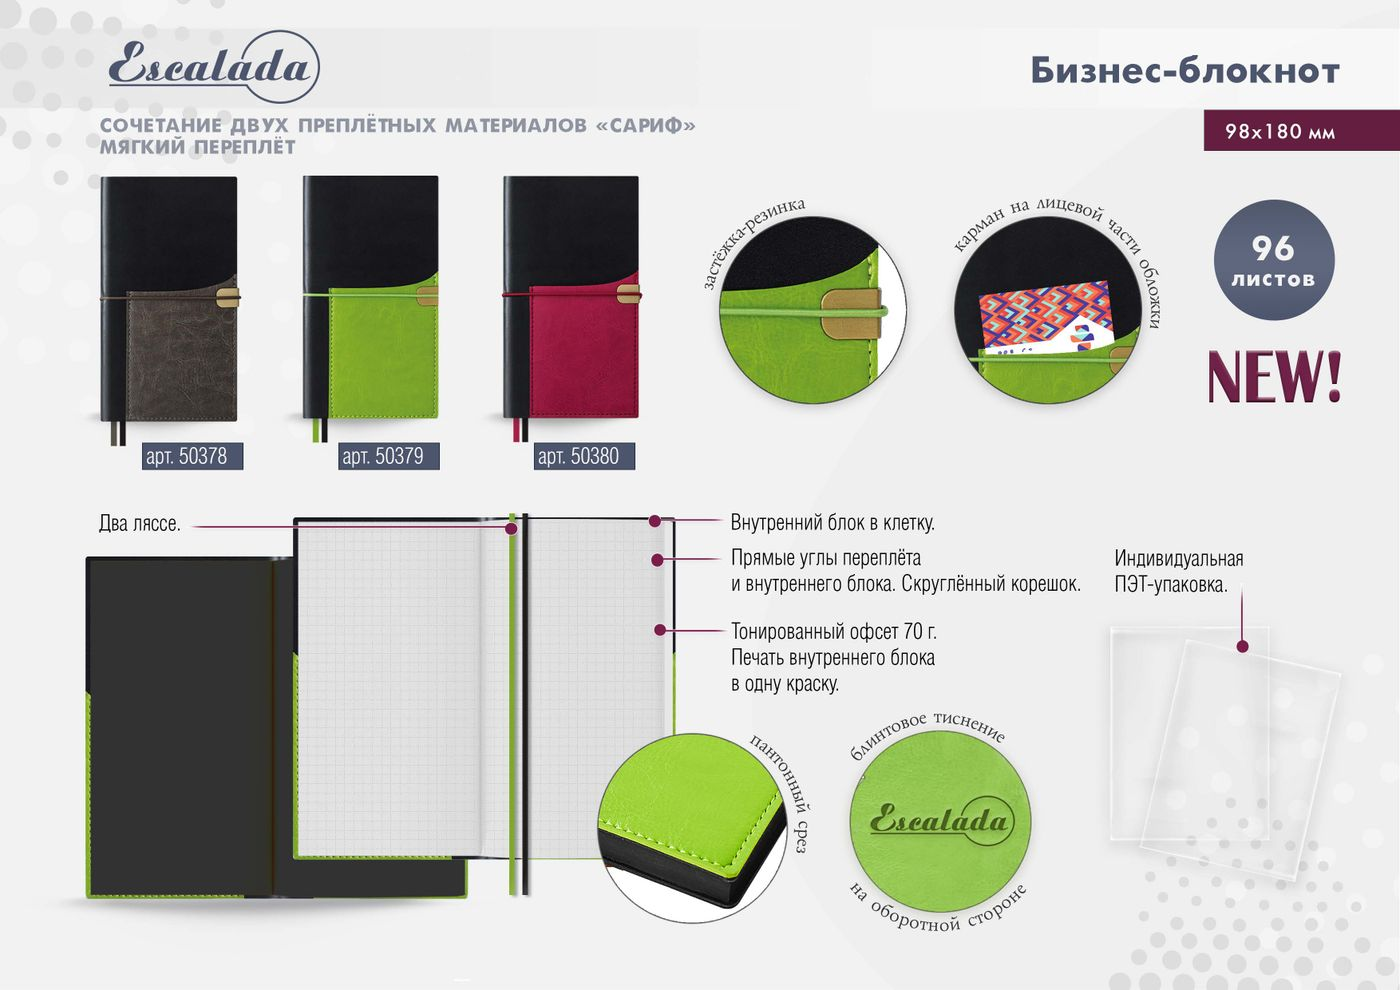 https://phoenix-plus-shop.ru/products/soft-business-notebook-escalada2020-elastic-pocket-50380-crimson